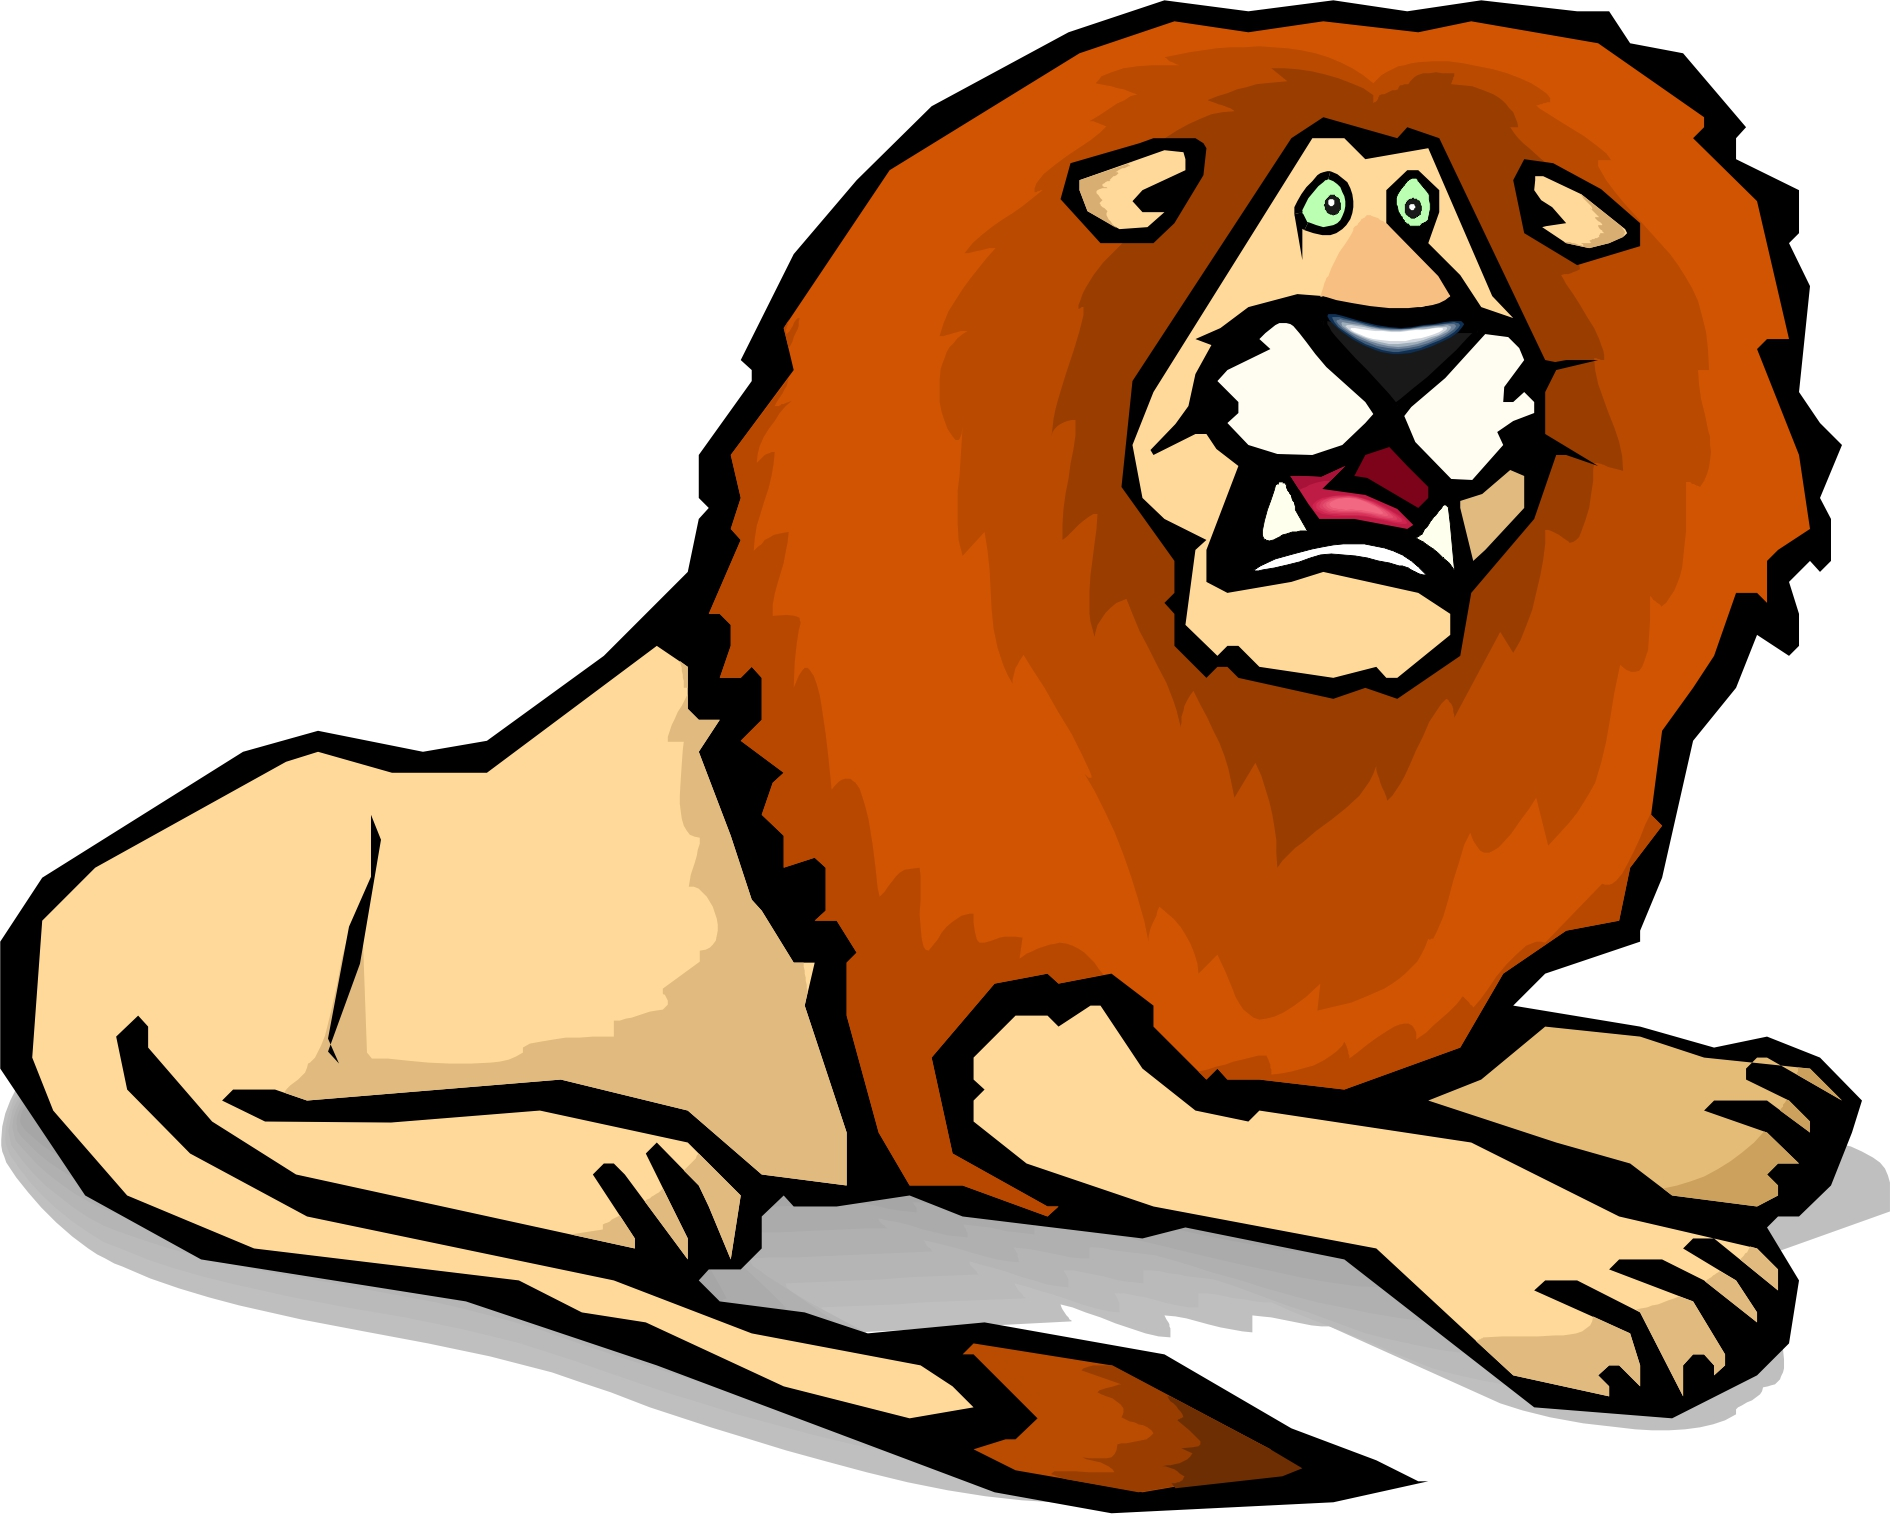 Cartoon Lion Images - Cliparts.co